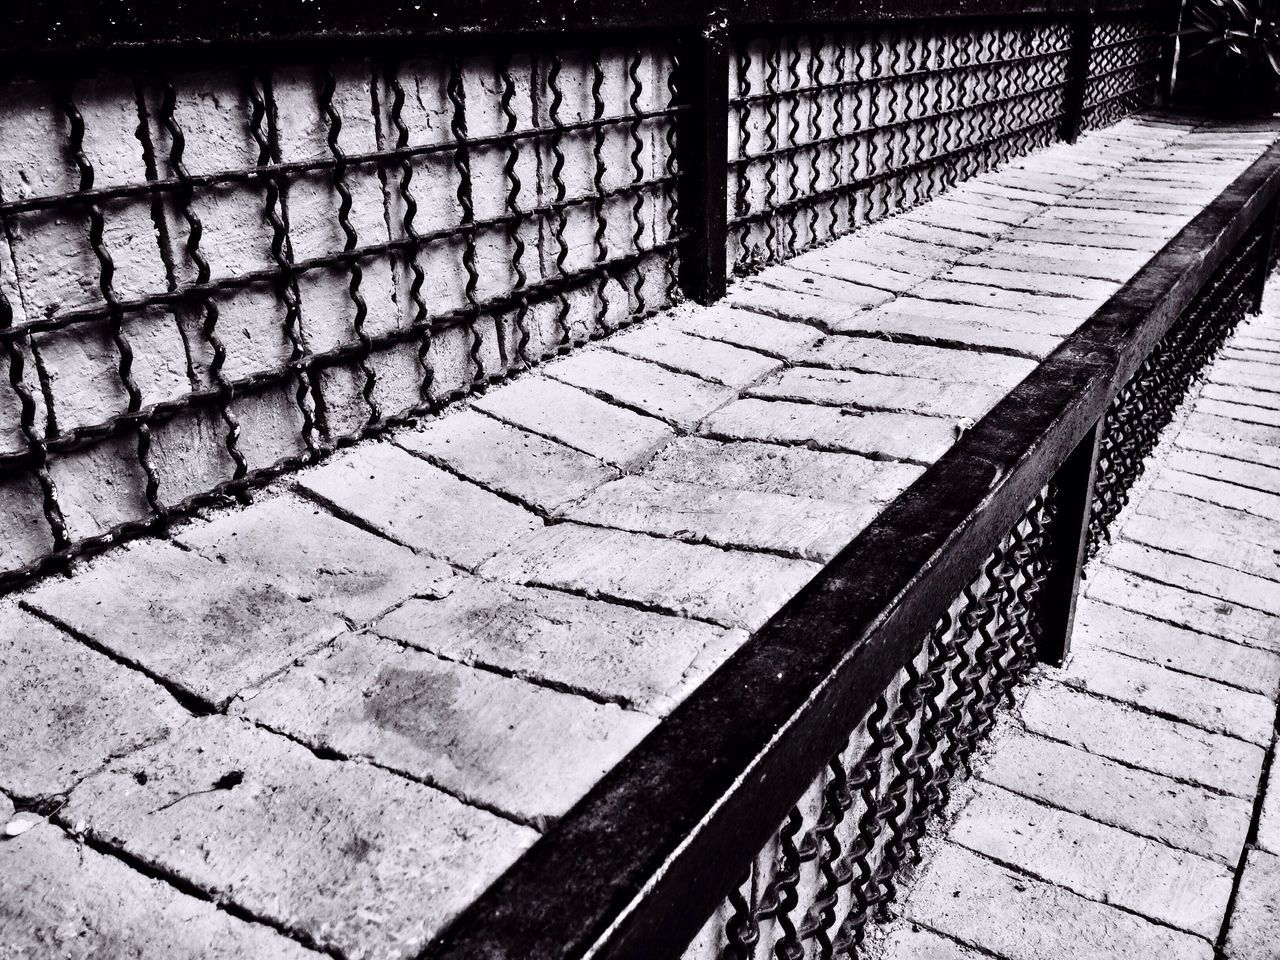 Decoration Floor Pattern Random Textures And Patterns Abstract Black&white Abstract Nature Background Background Texture Art Architecture Stair Brick